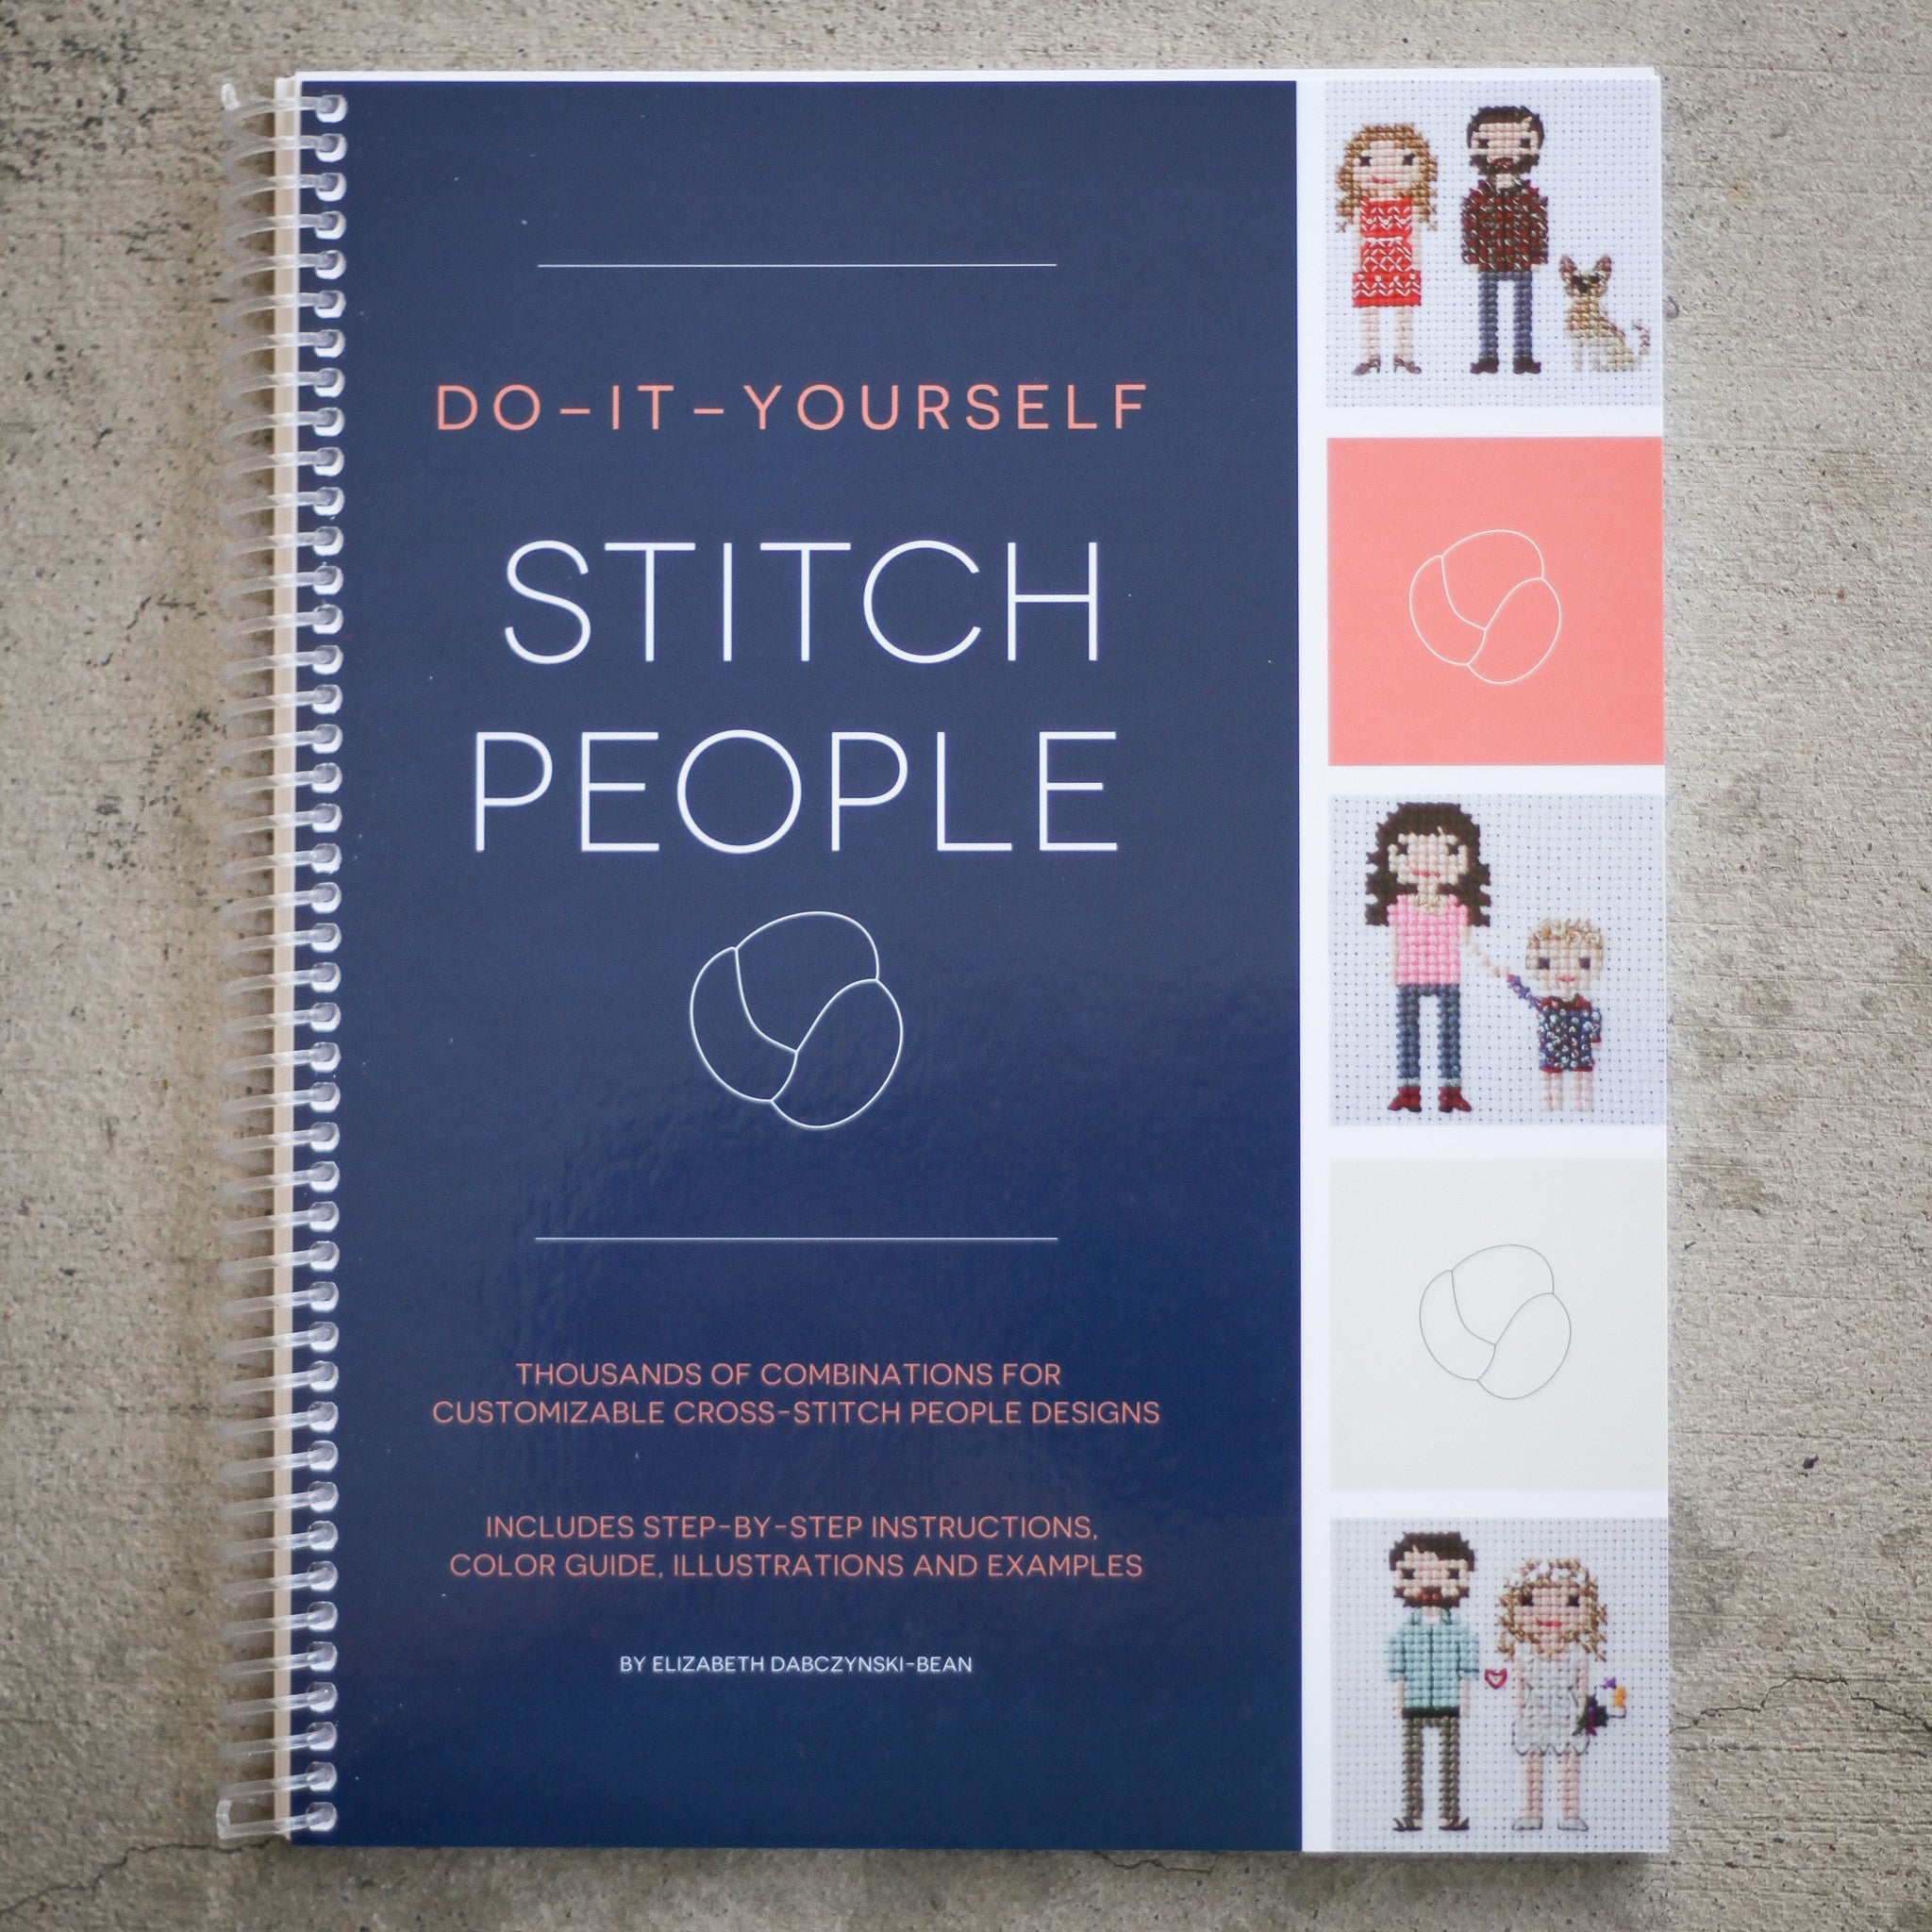 Diy stitch people book cross stitch portrait patterns do it yourself stitch people book solutioingenieria Images